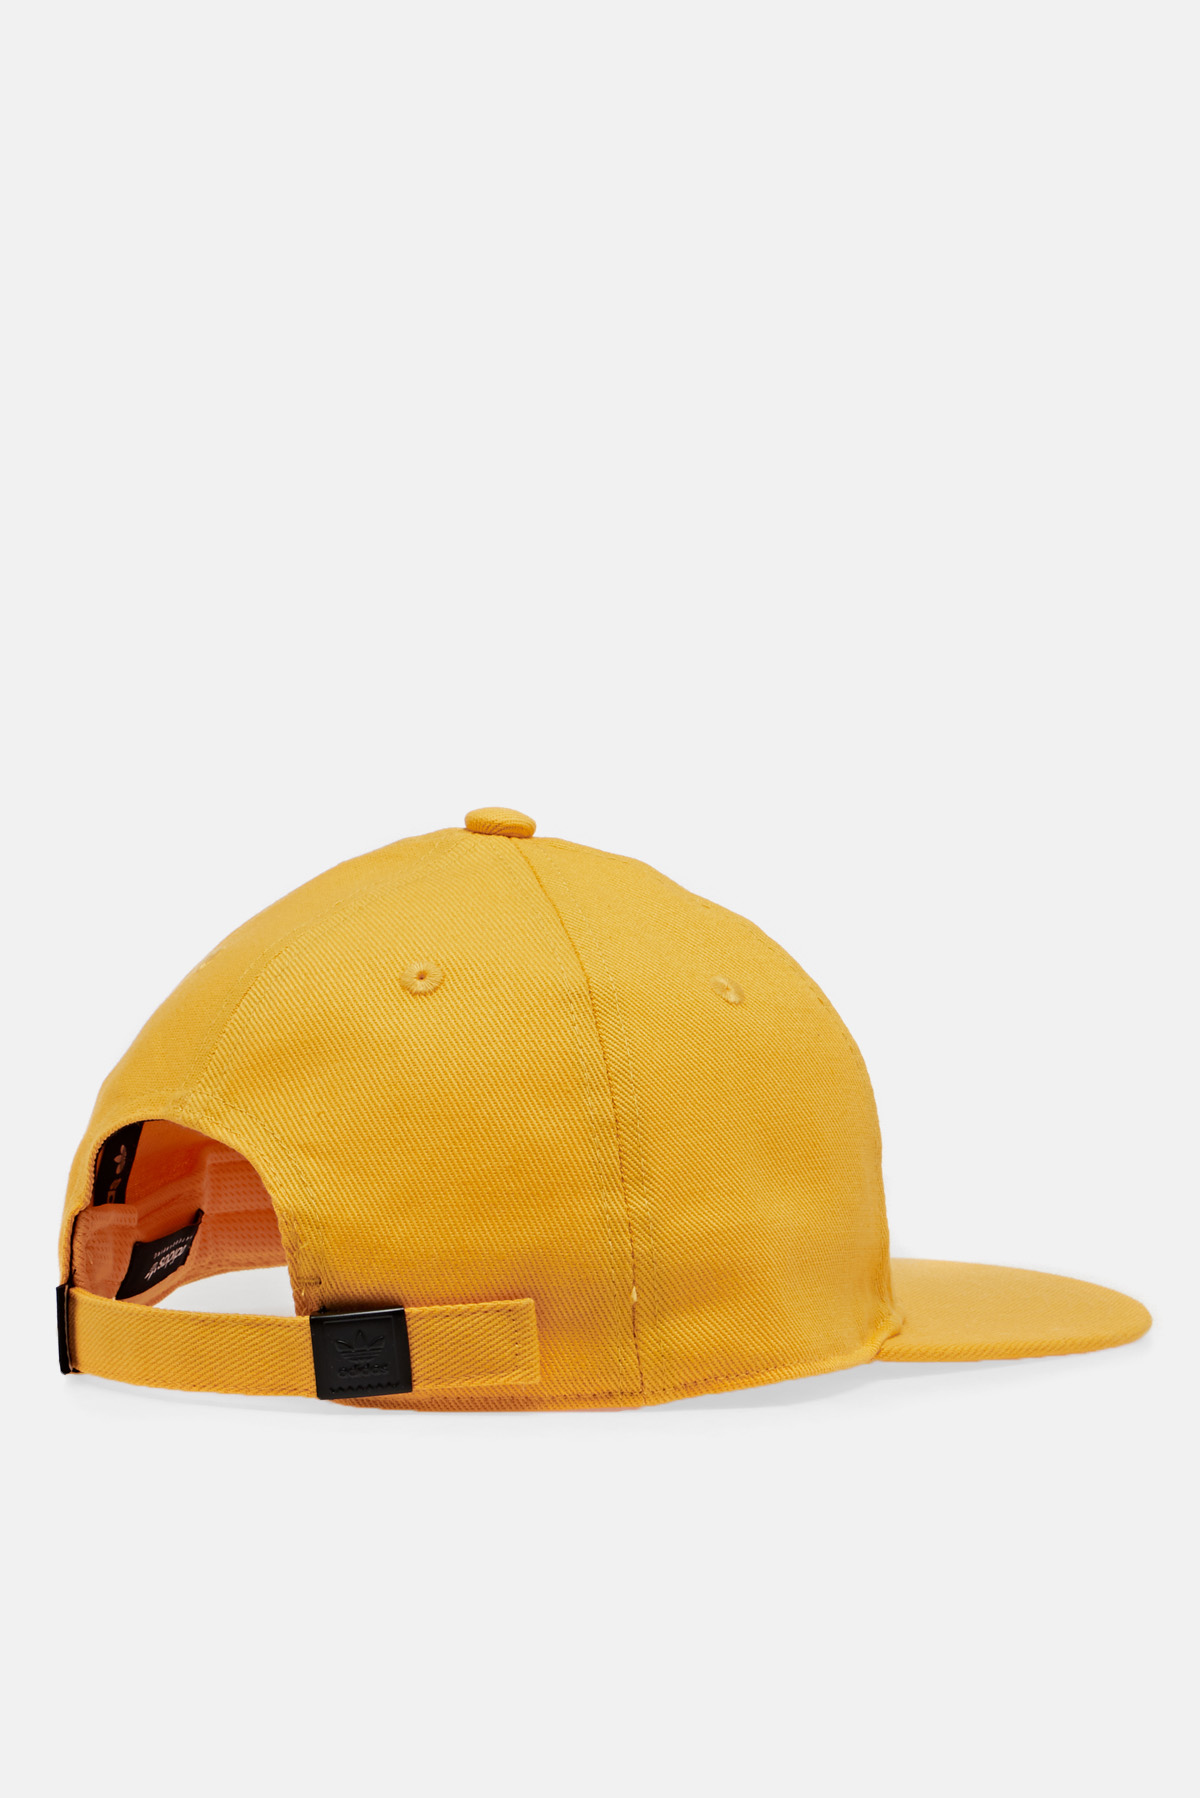 Adidas Shmoo Six Panel Mütze available from Priory